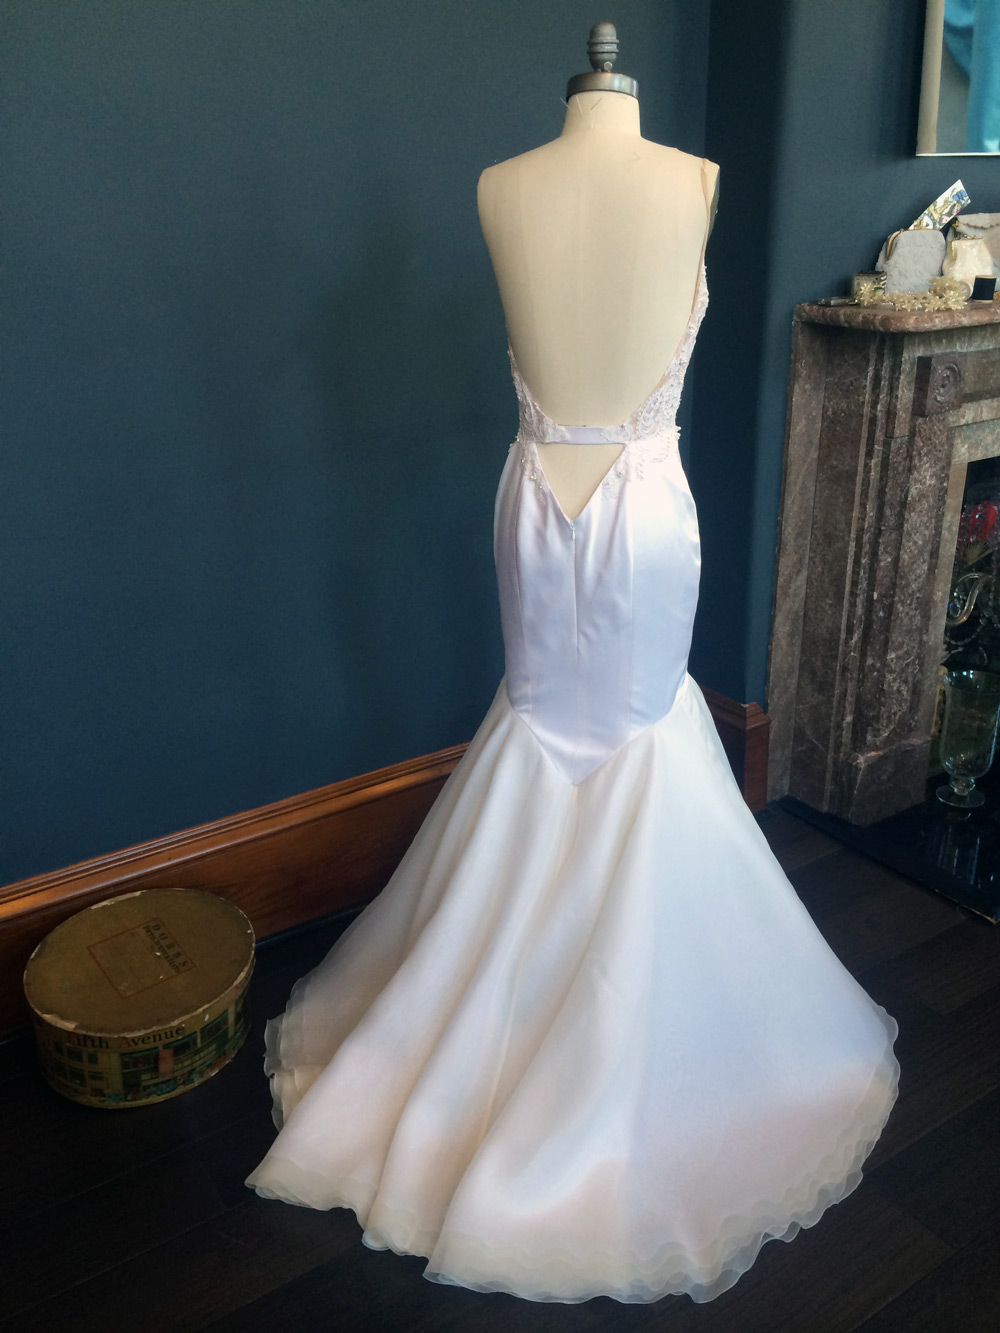 The back of Krysta's wedding gown – flattering cut out and a mermaid tail that would make Ariel jealous!